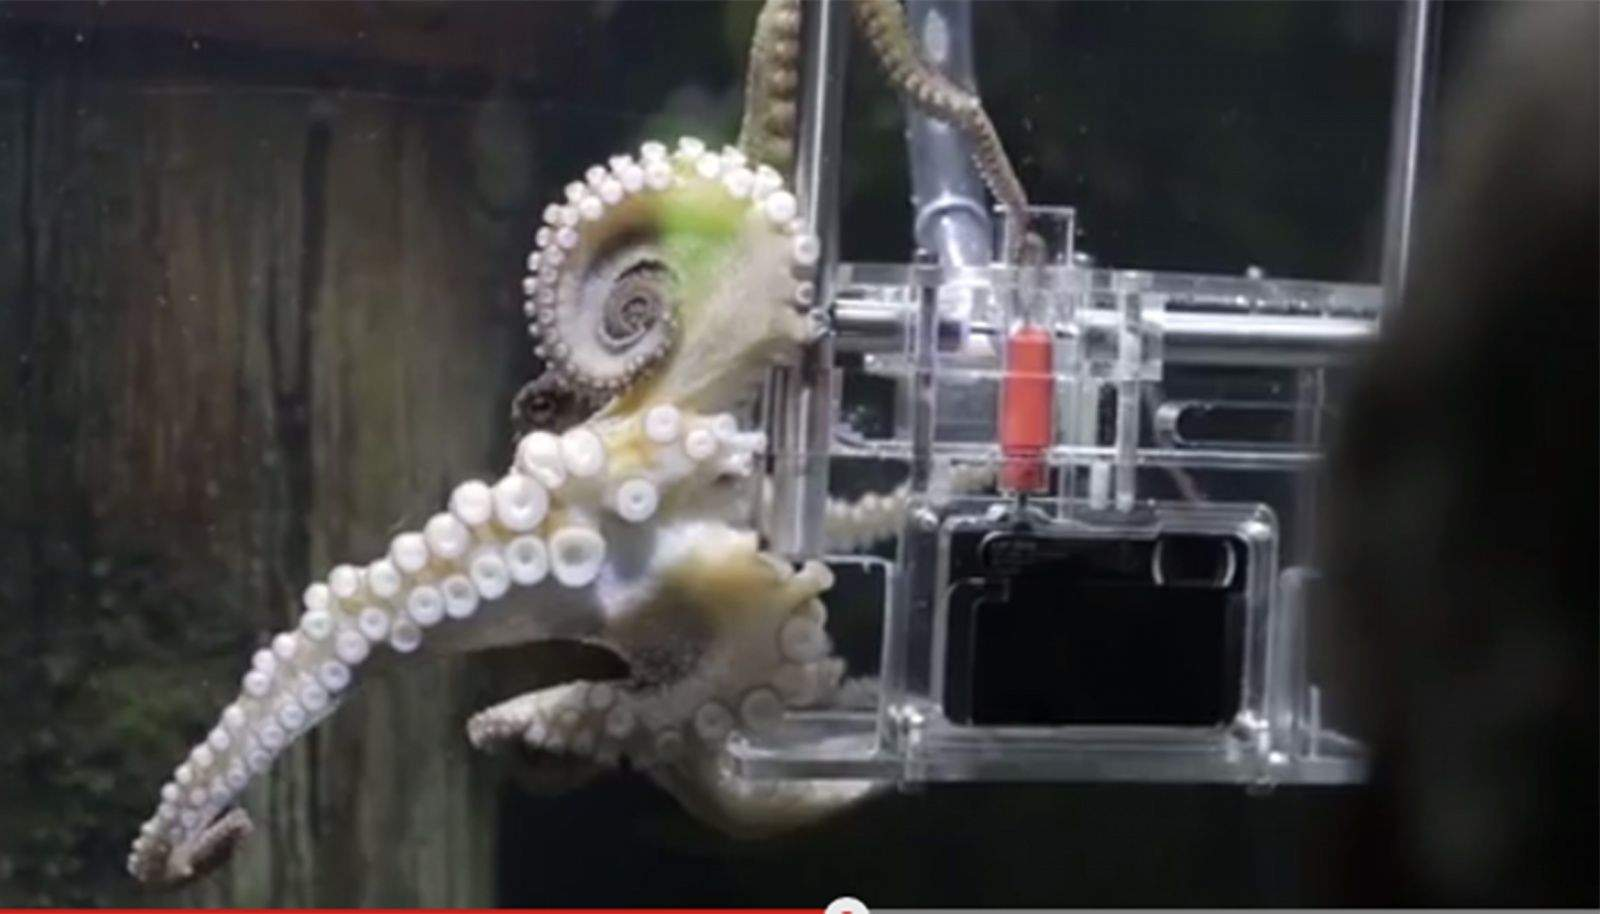 Rambo is an octopus that has been trained to photograph her visitors at an aquarium in New Zealand. Photo: Sony/YouTube